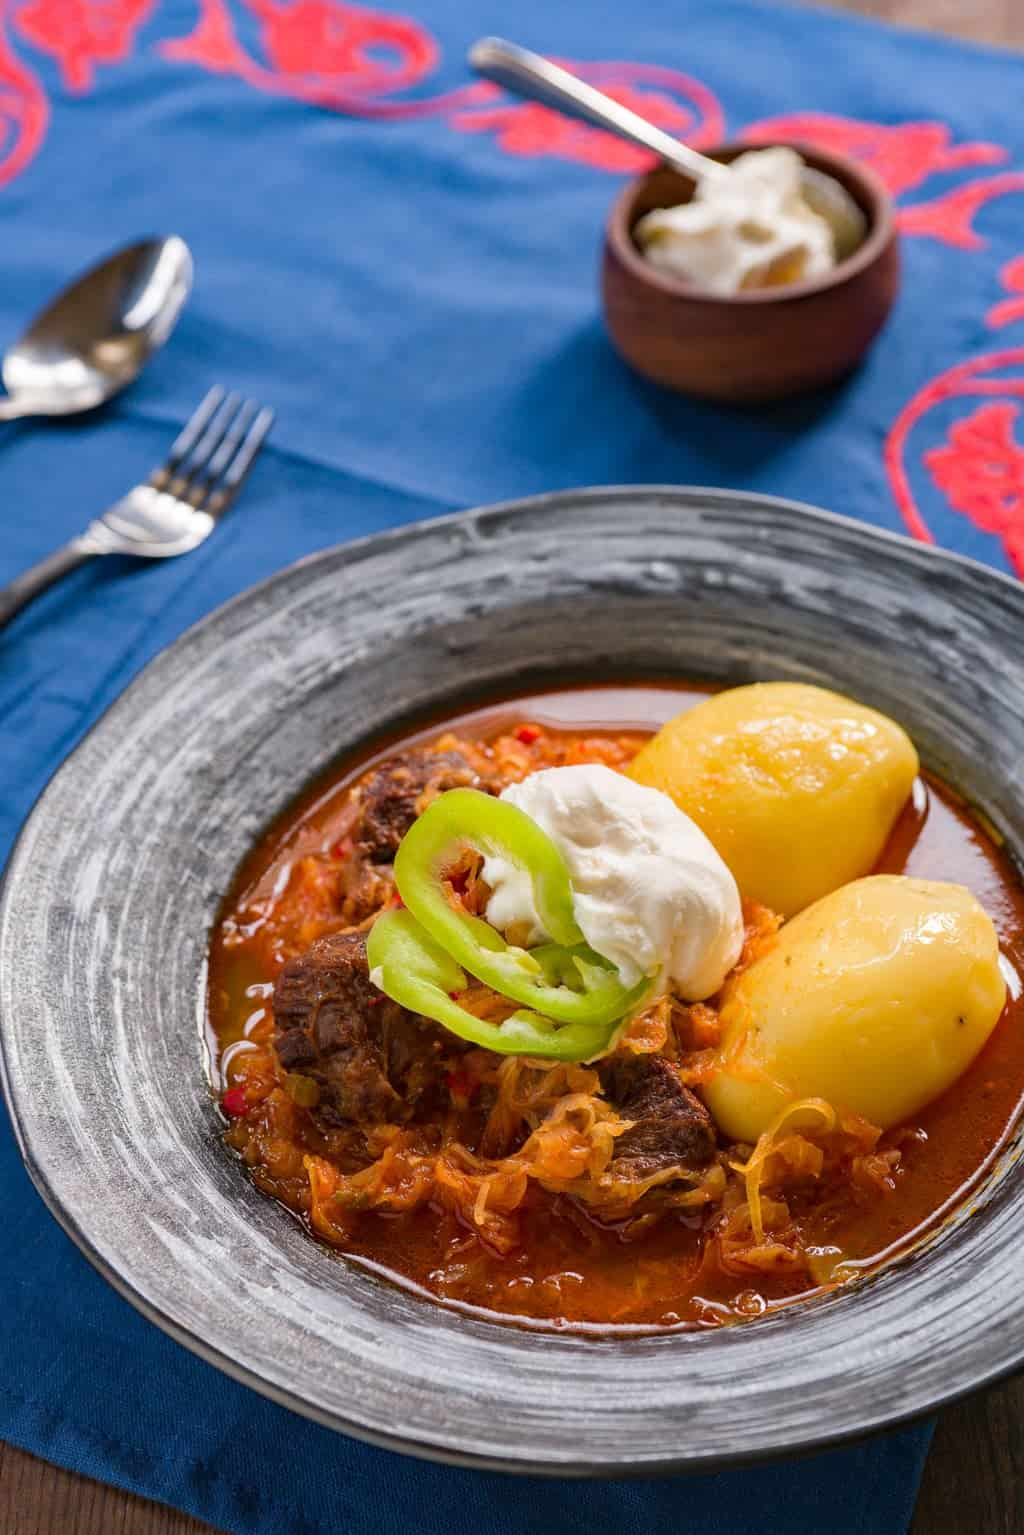 Csángó gulyás is a wonderfully balanced Goulash in the style of the Csángó people, perfect for winter.